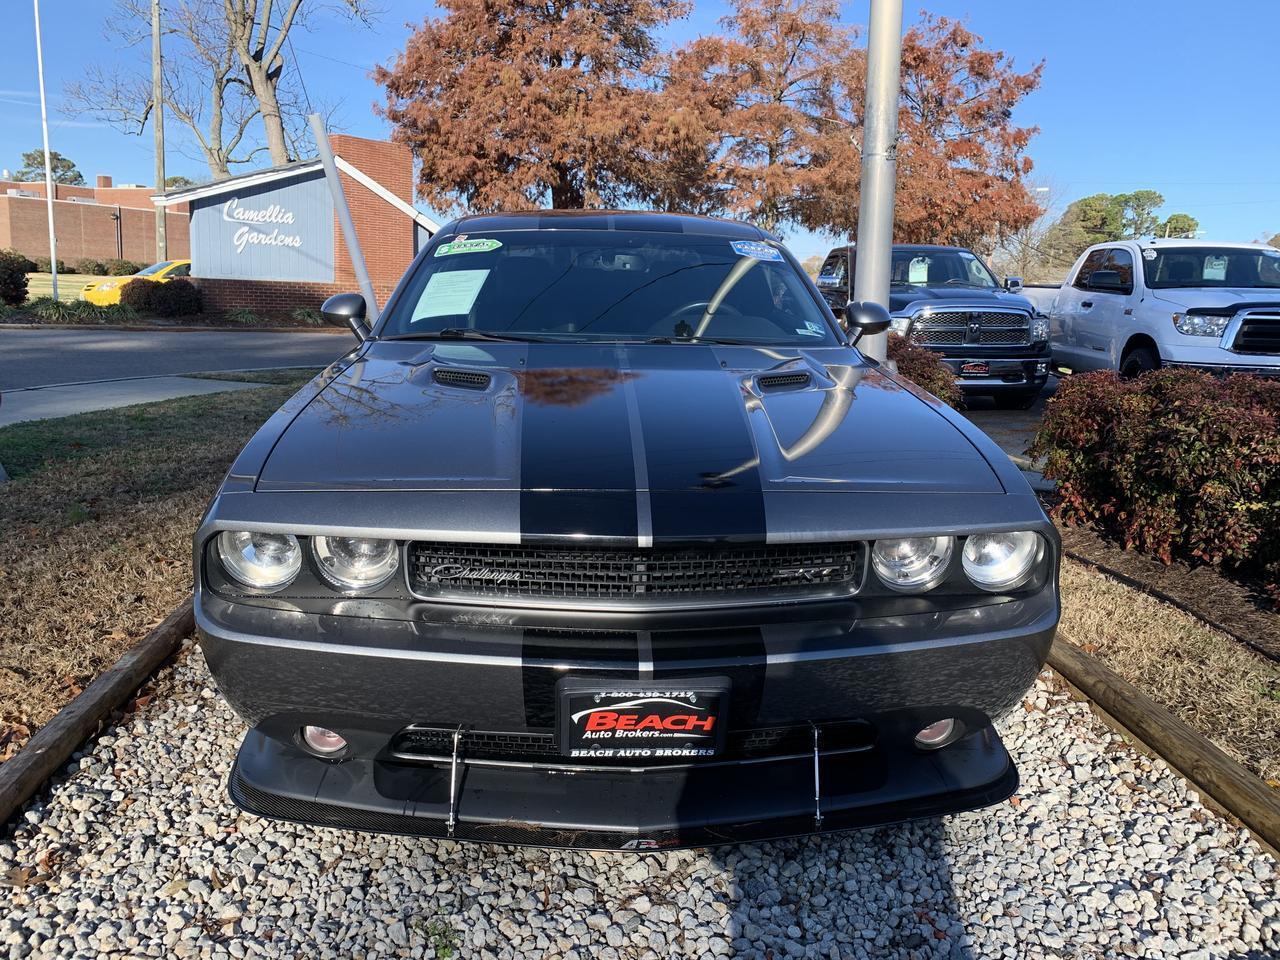 2012 DODGE CHALLENGER SRT8 392, WARRANTY, MANUAL,LEATHER, SUNROOF, NAVIGATION, HEATED SEATS, BACKUP CAM, BLUETOOTH! Norfolk VA